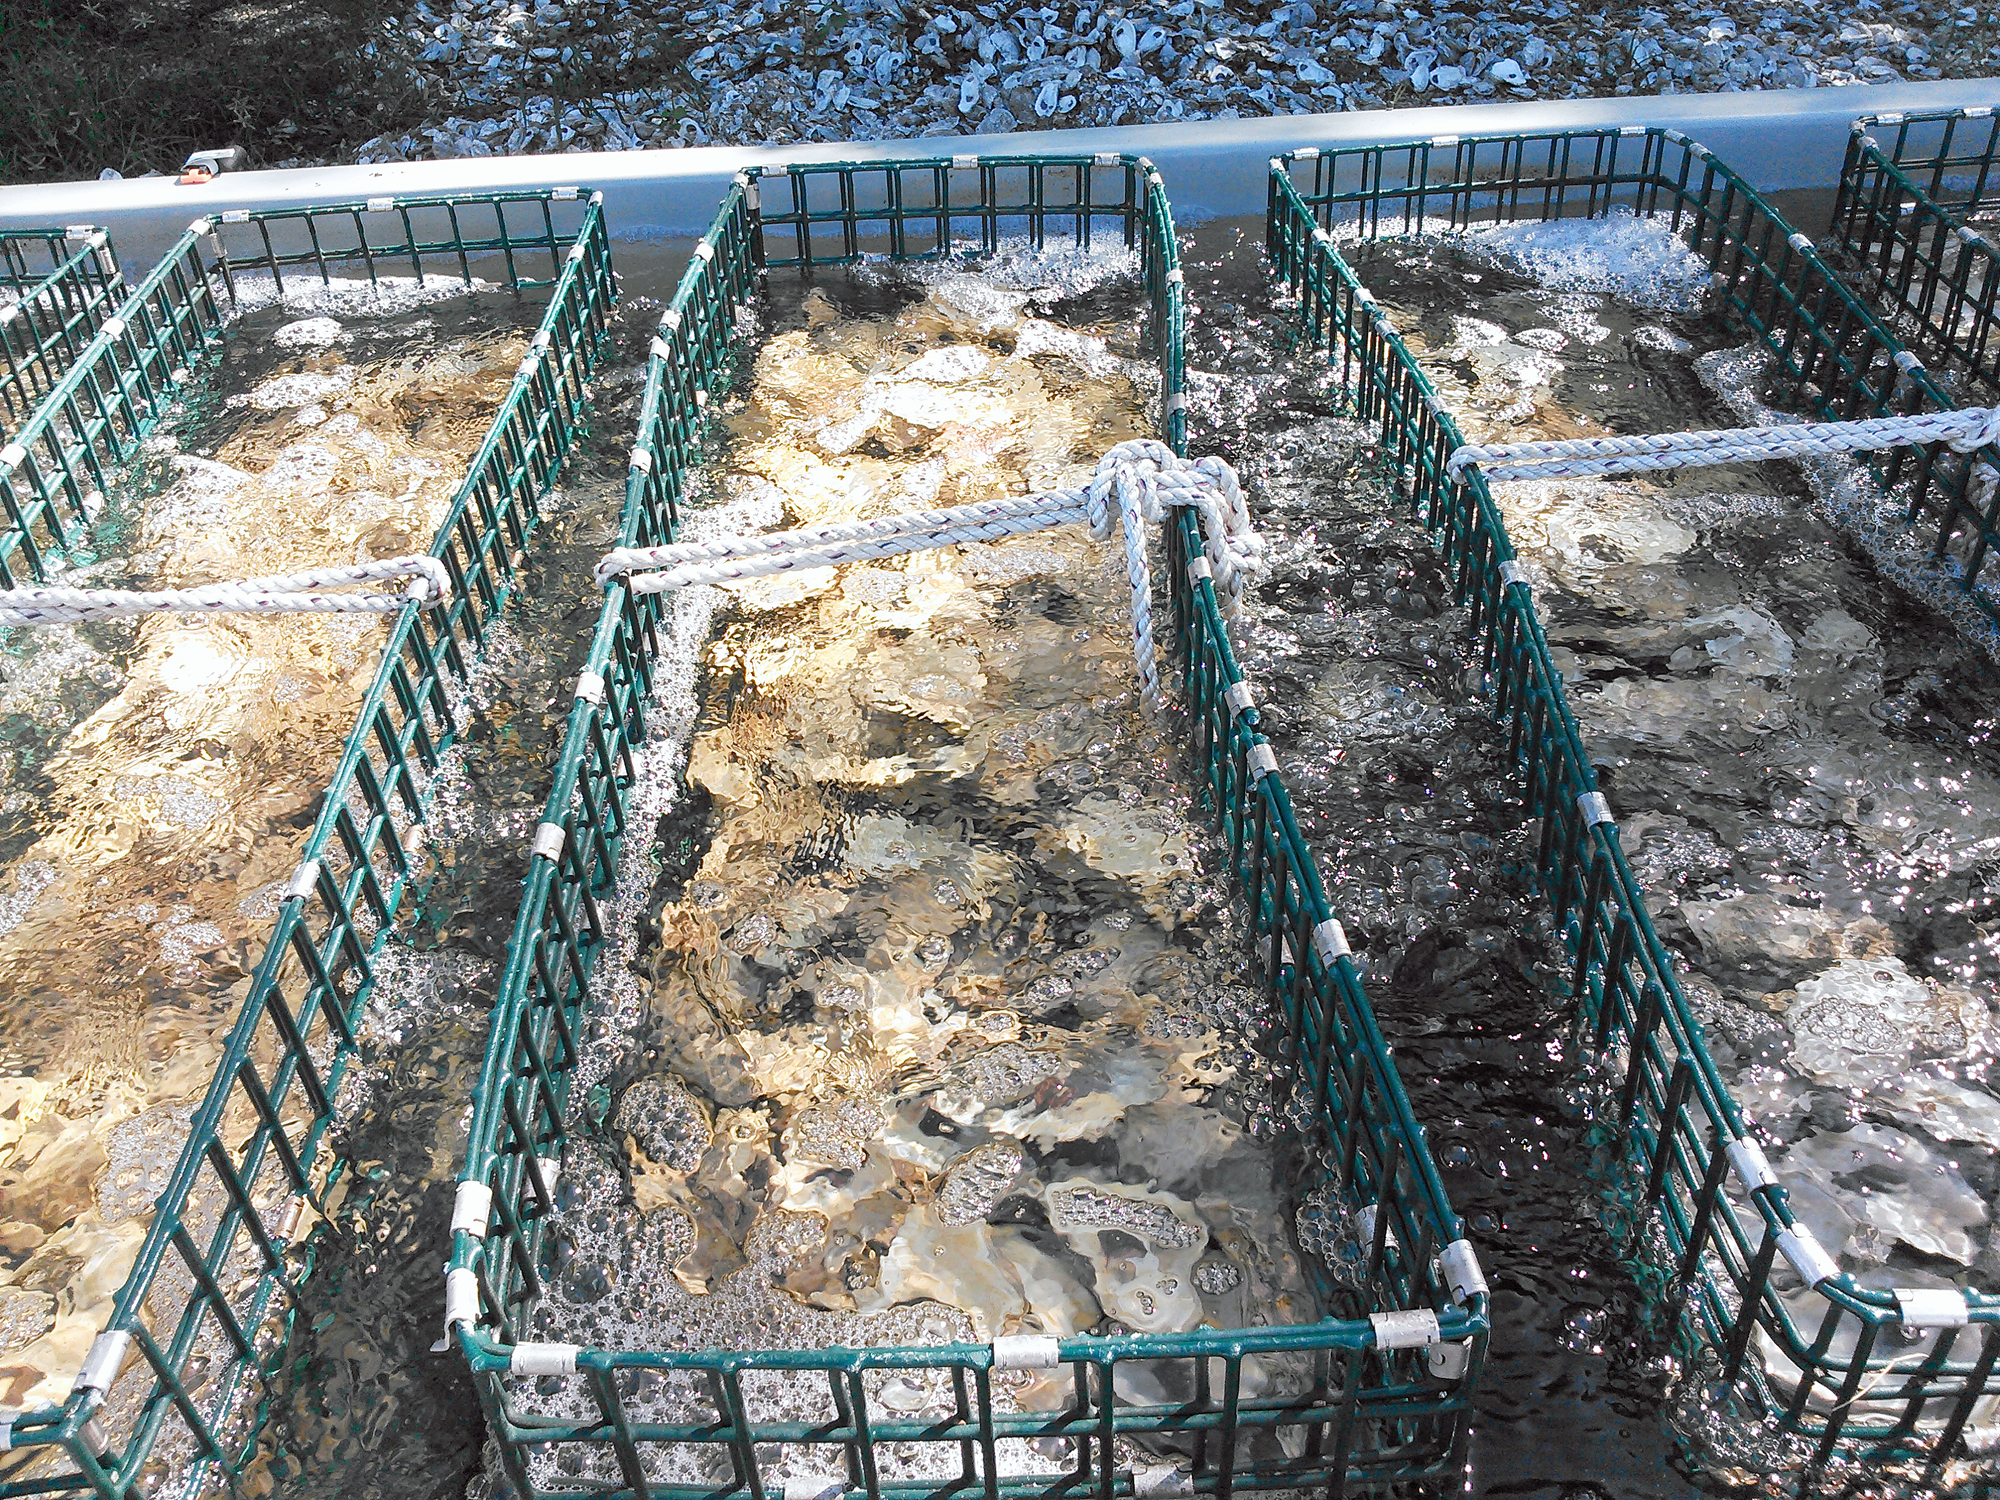 Alabama oyster supply unusually low this year